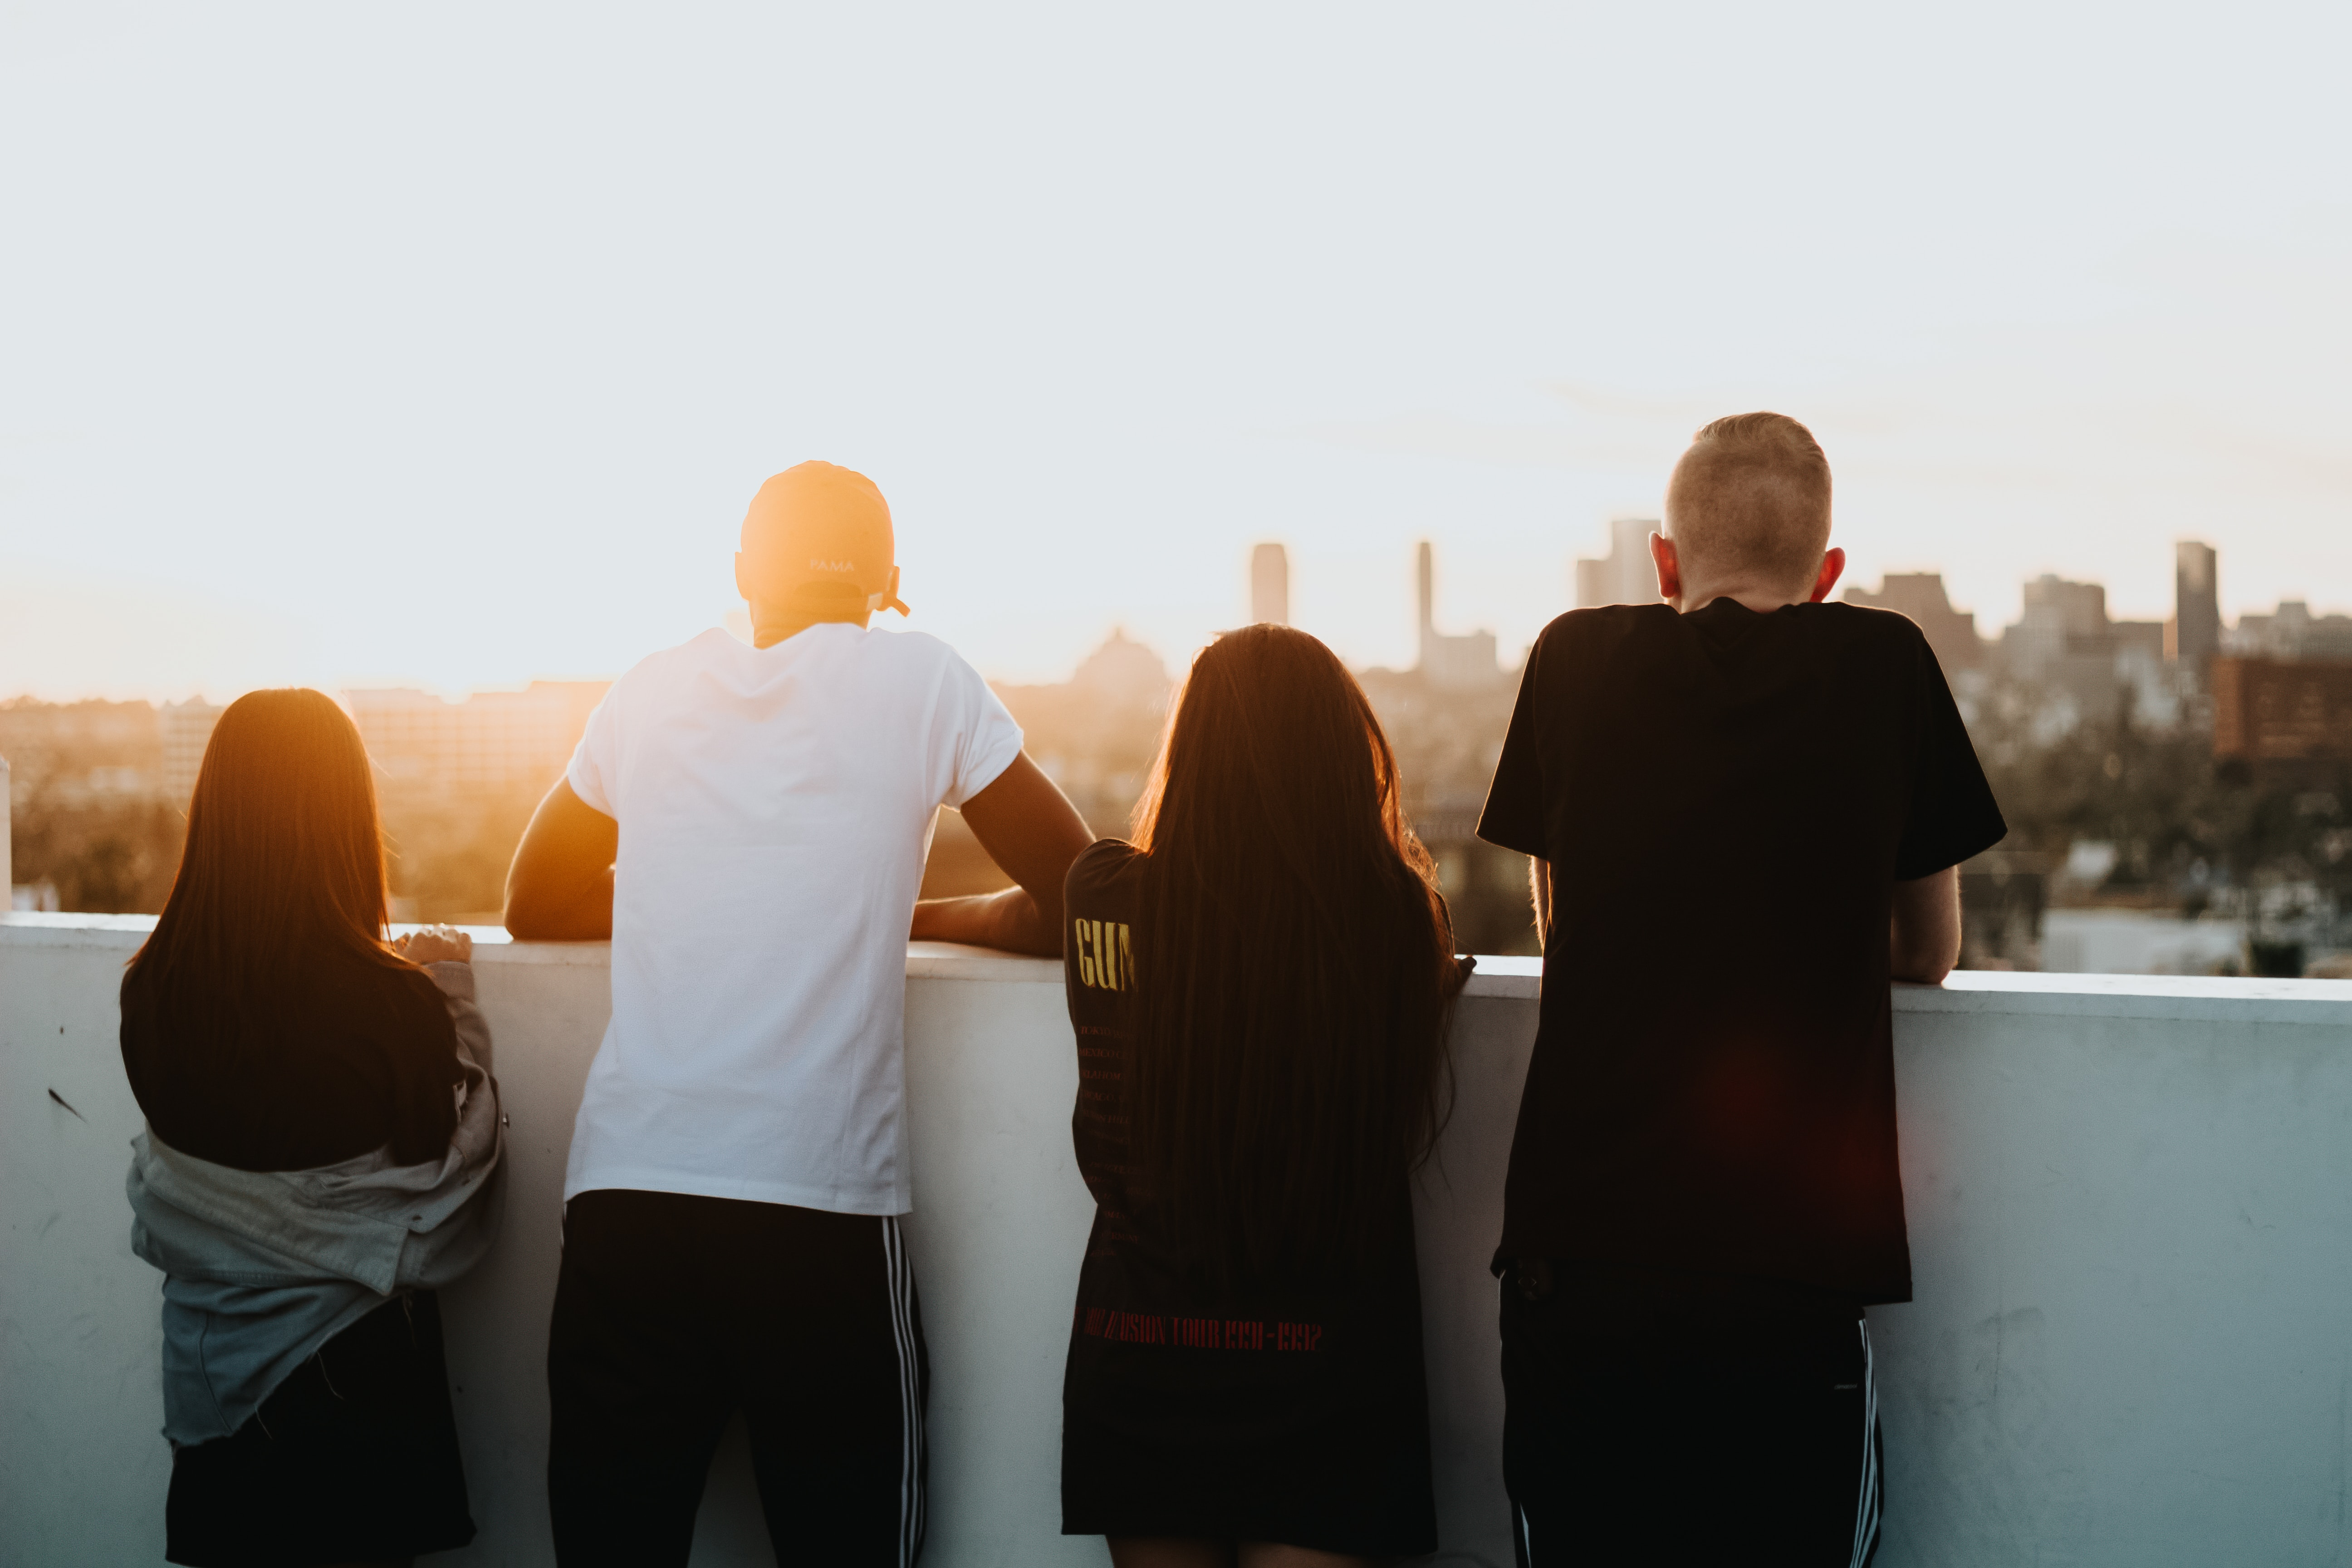 Four young people standing at a wall looking at a sunset